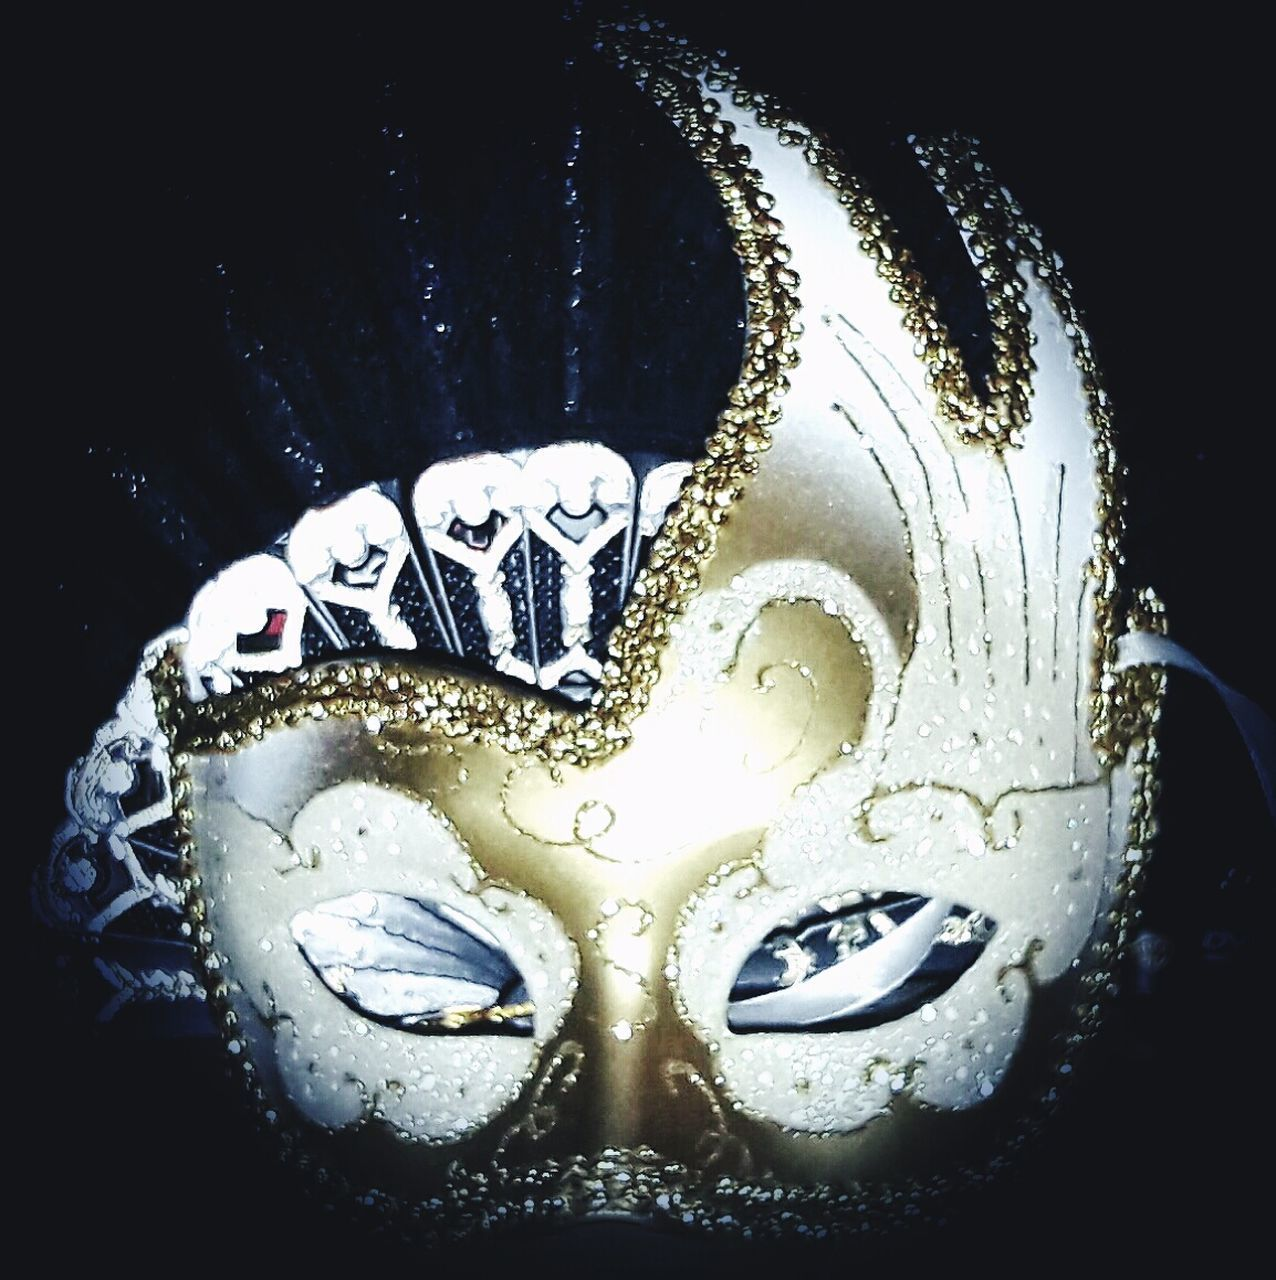 mask - disguise, venetian mask, single object, carnival - celebration event, disguise, cultures, close-up, no people, celebration, carnival, indoors, day